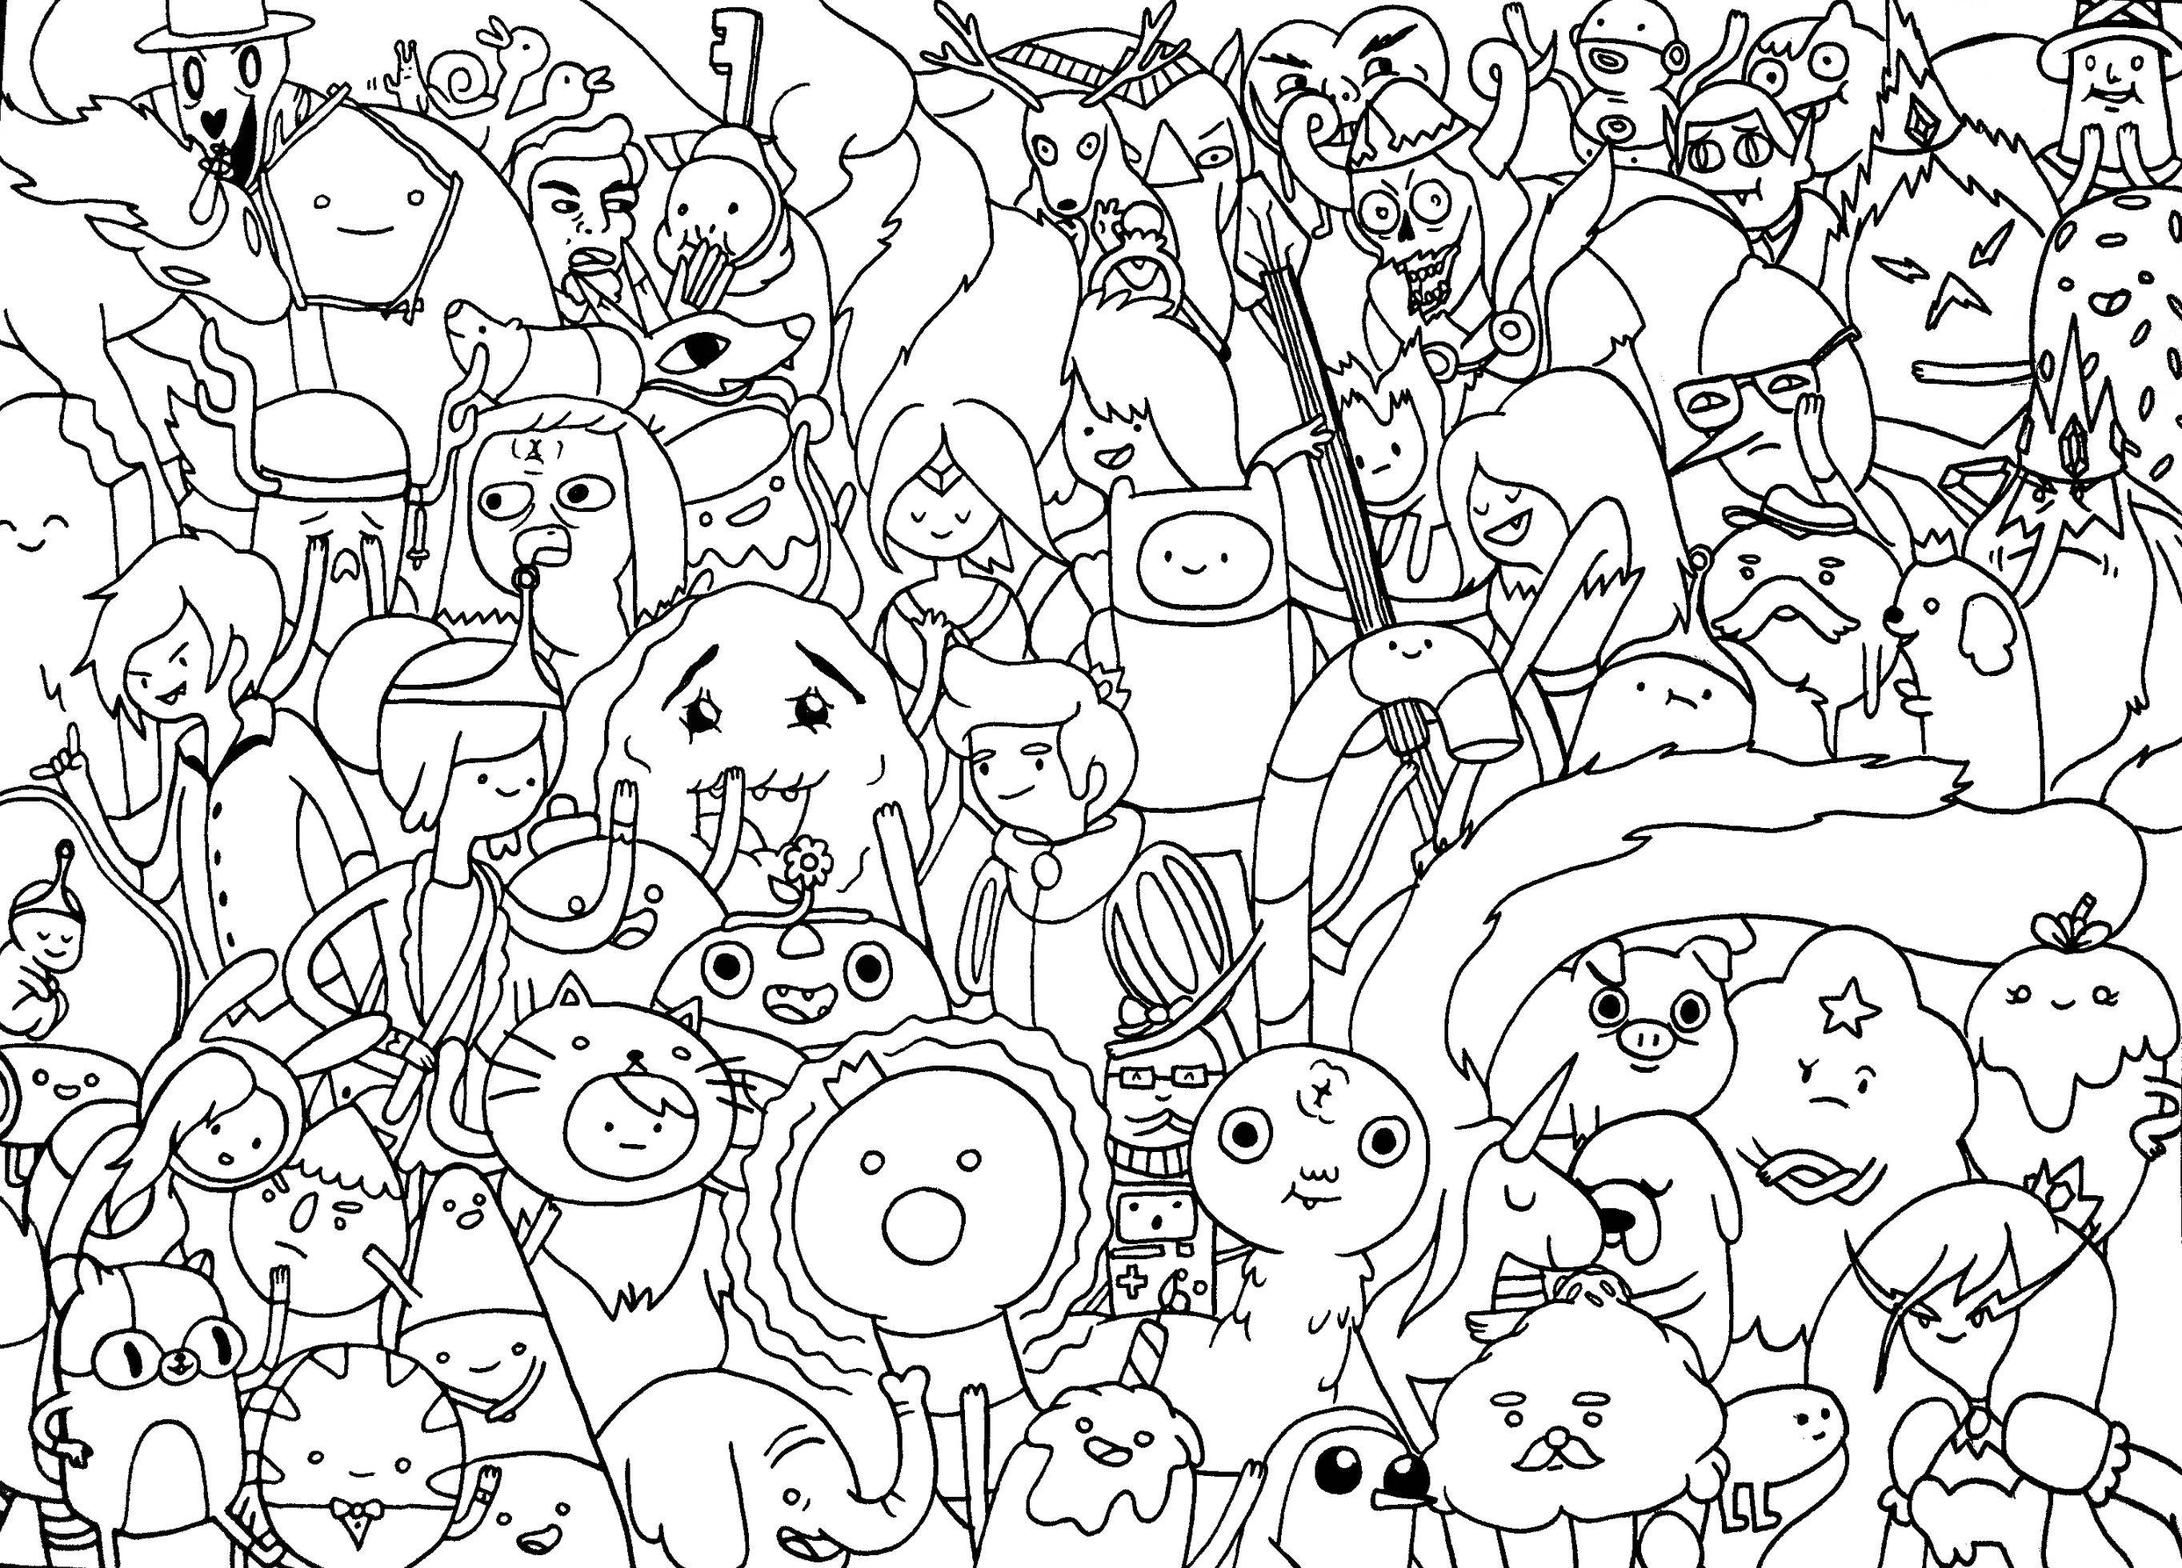 adventure time coloring page coloring pages of epicness pinterest adventure time craft and coloring books